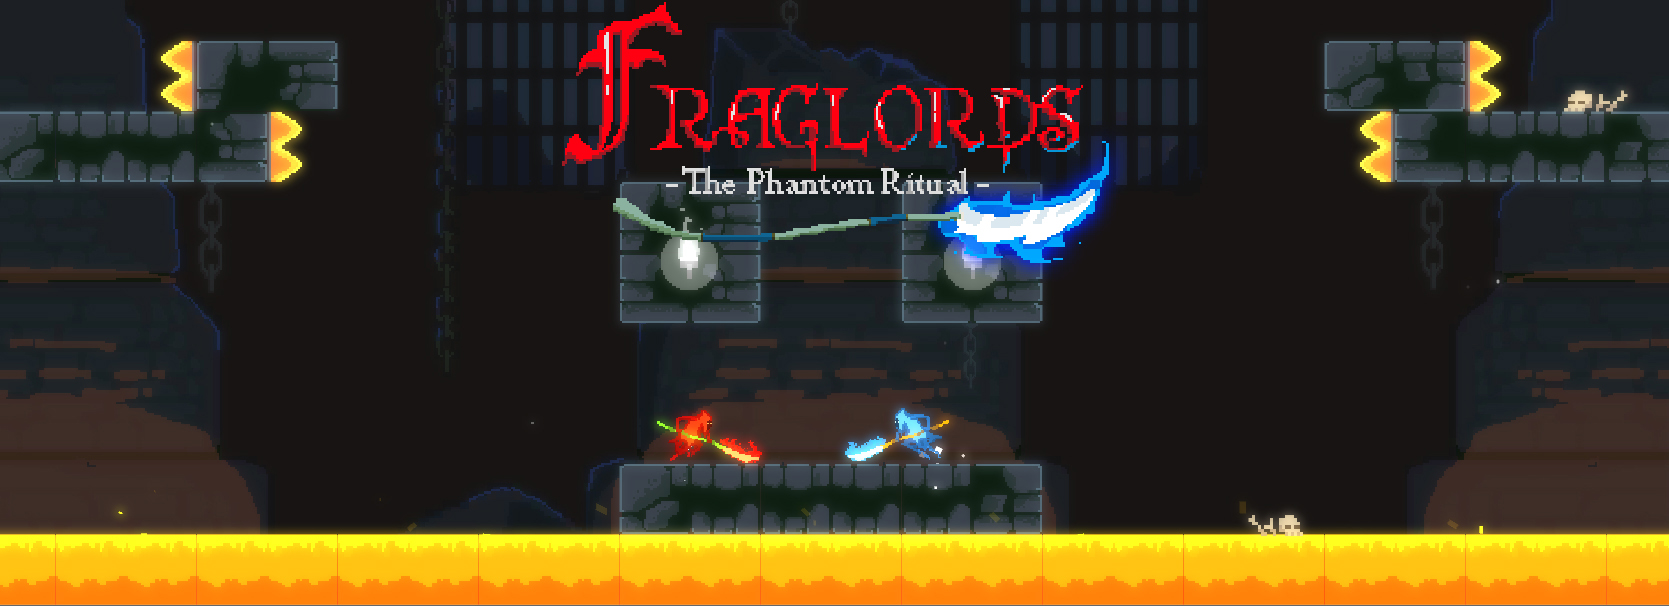 Fraglords: The Phantom Ritual